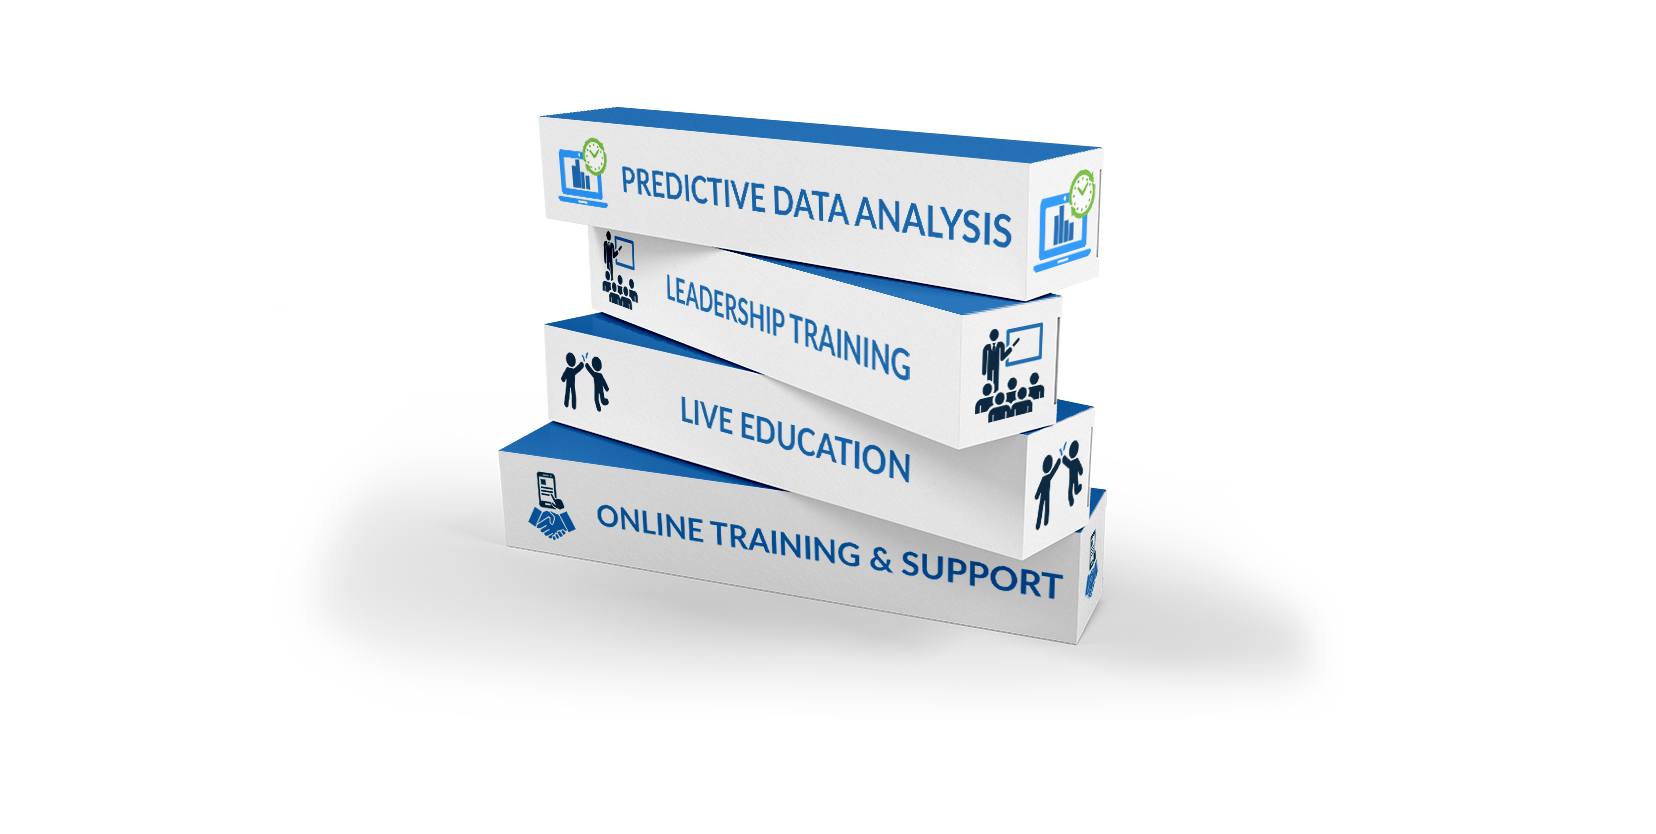 Predictive Injury Data Analysis, Leadership Training, Live Education, Online Training and Support, Movement Prep, Recovery Routines, Injury Prevention